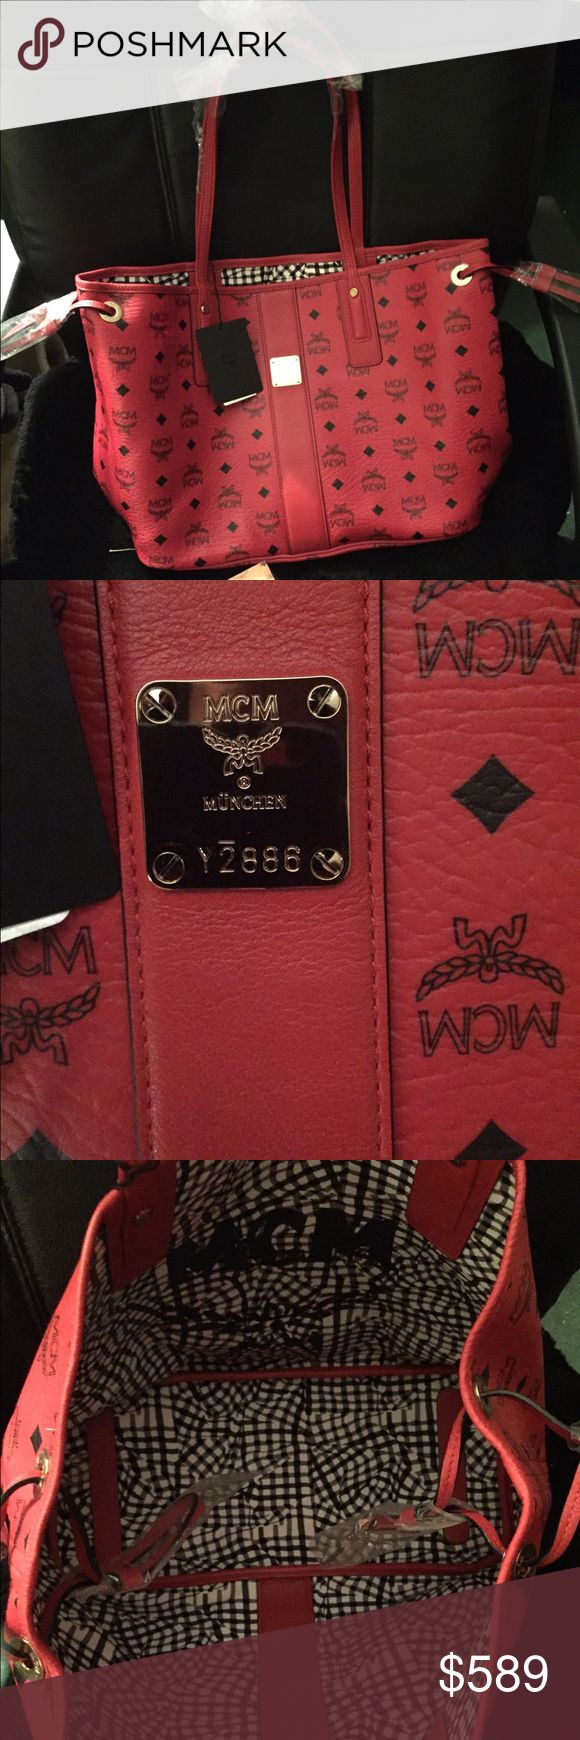 Ruby red Mcm medium tote Brand new and authentic  with tags & tags (will do 537 on pay & ship ASAP after payment) MCM Bags Totes